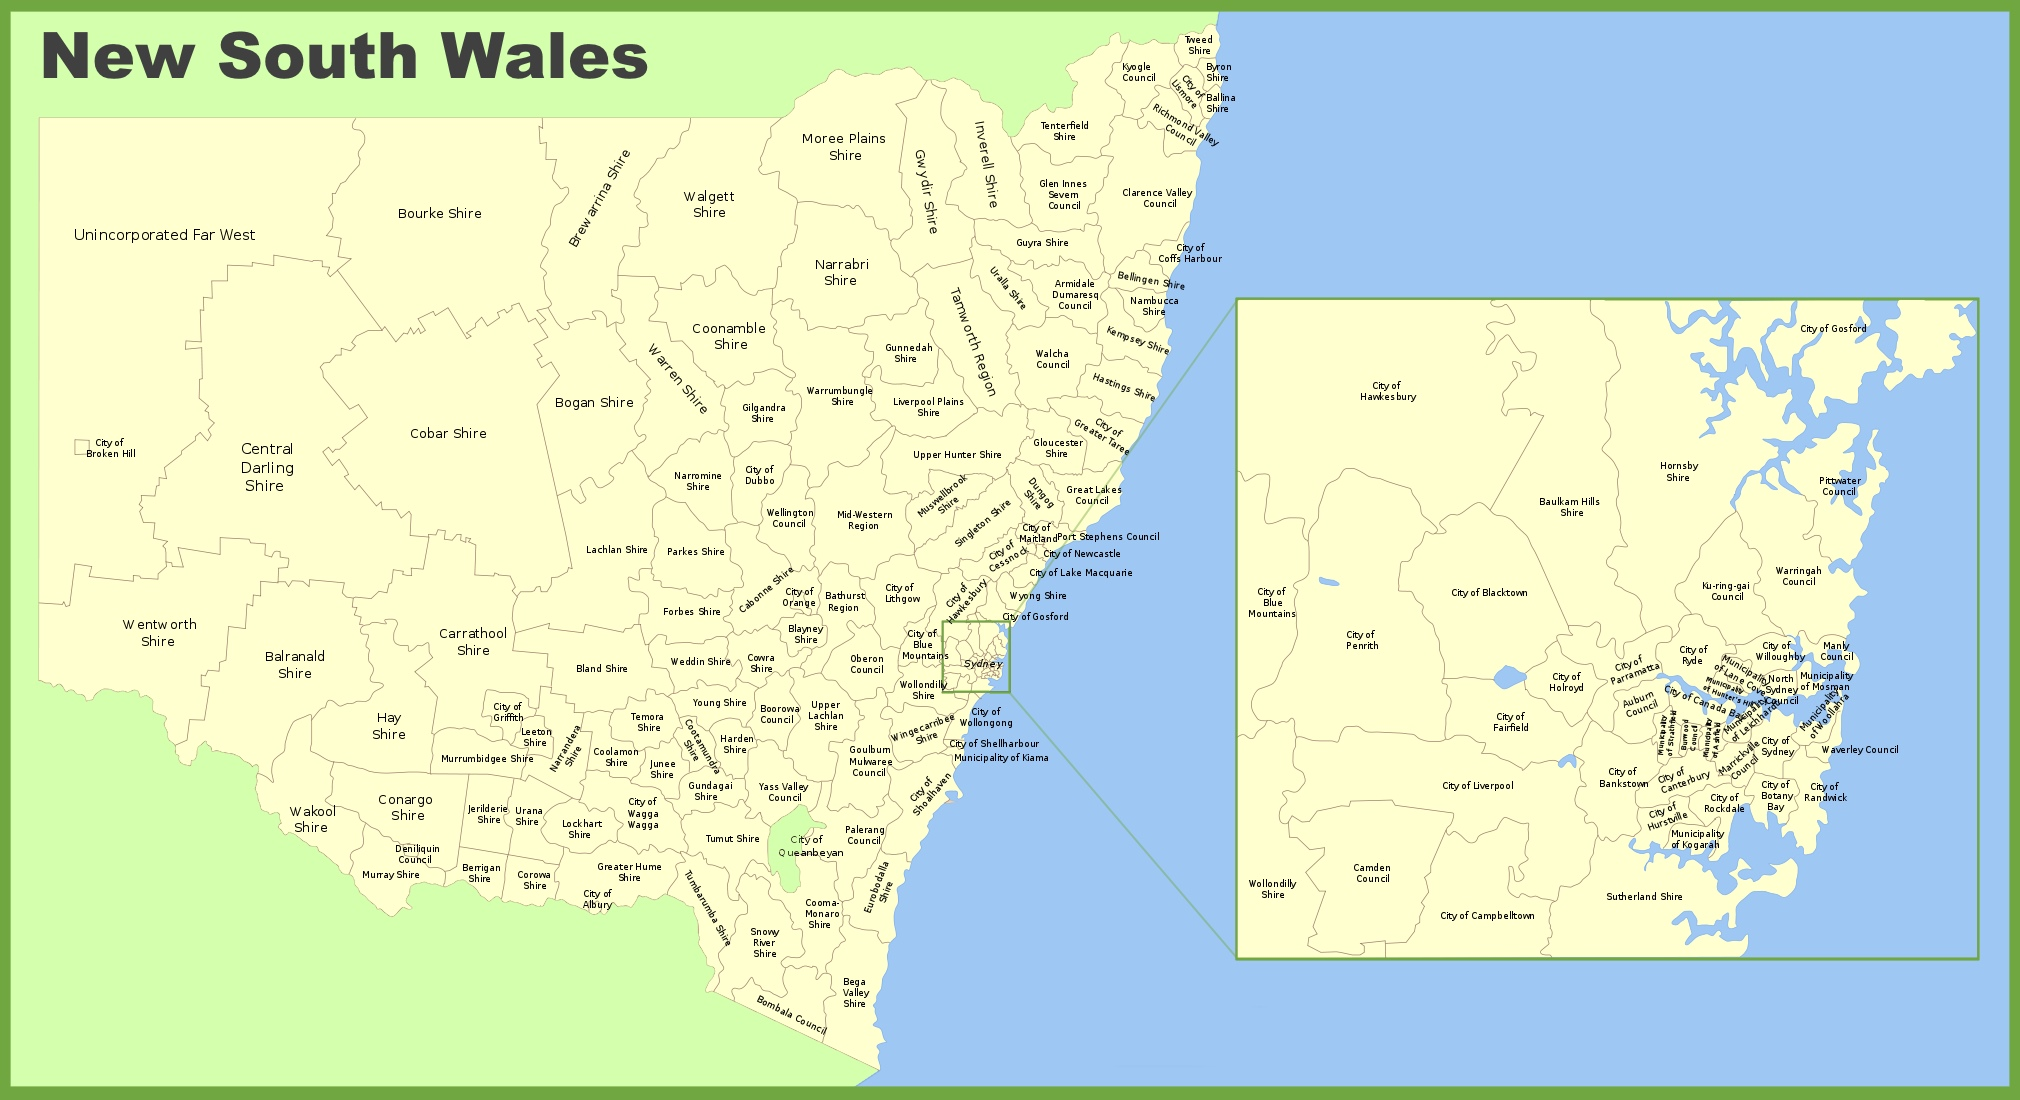 New South Wales local government area map